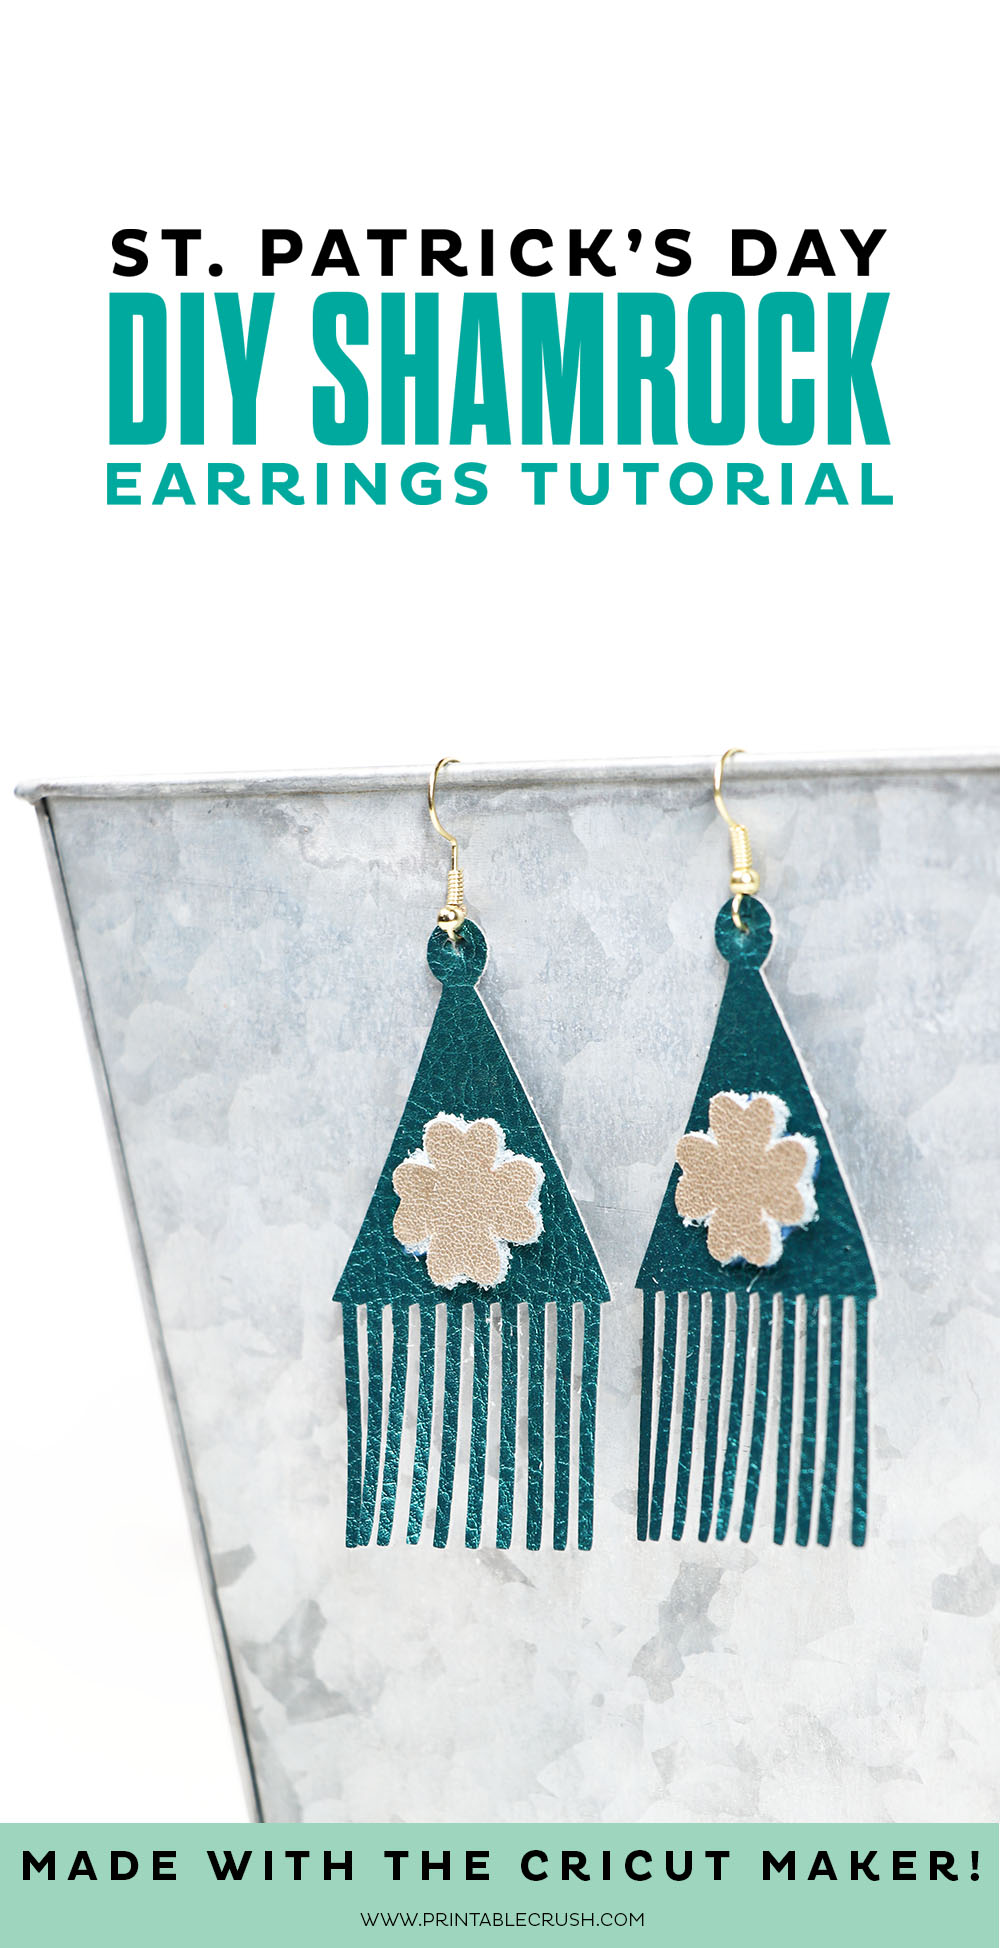 Don't you love these pretty St. Patrick's Day Shamrock Earrings made with the Cricut Maker? Check out this simple tutorial!